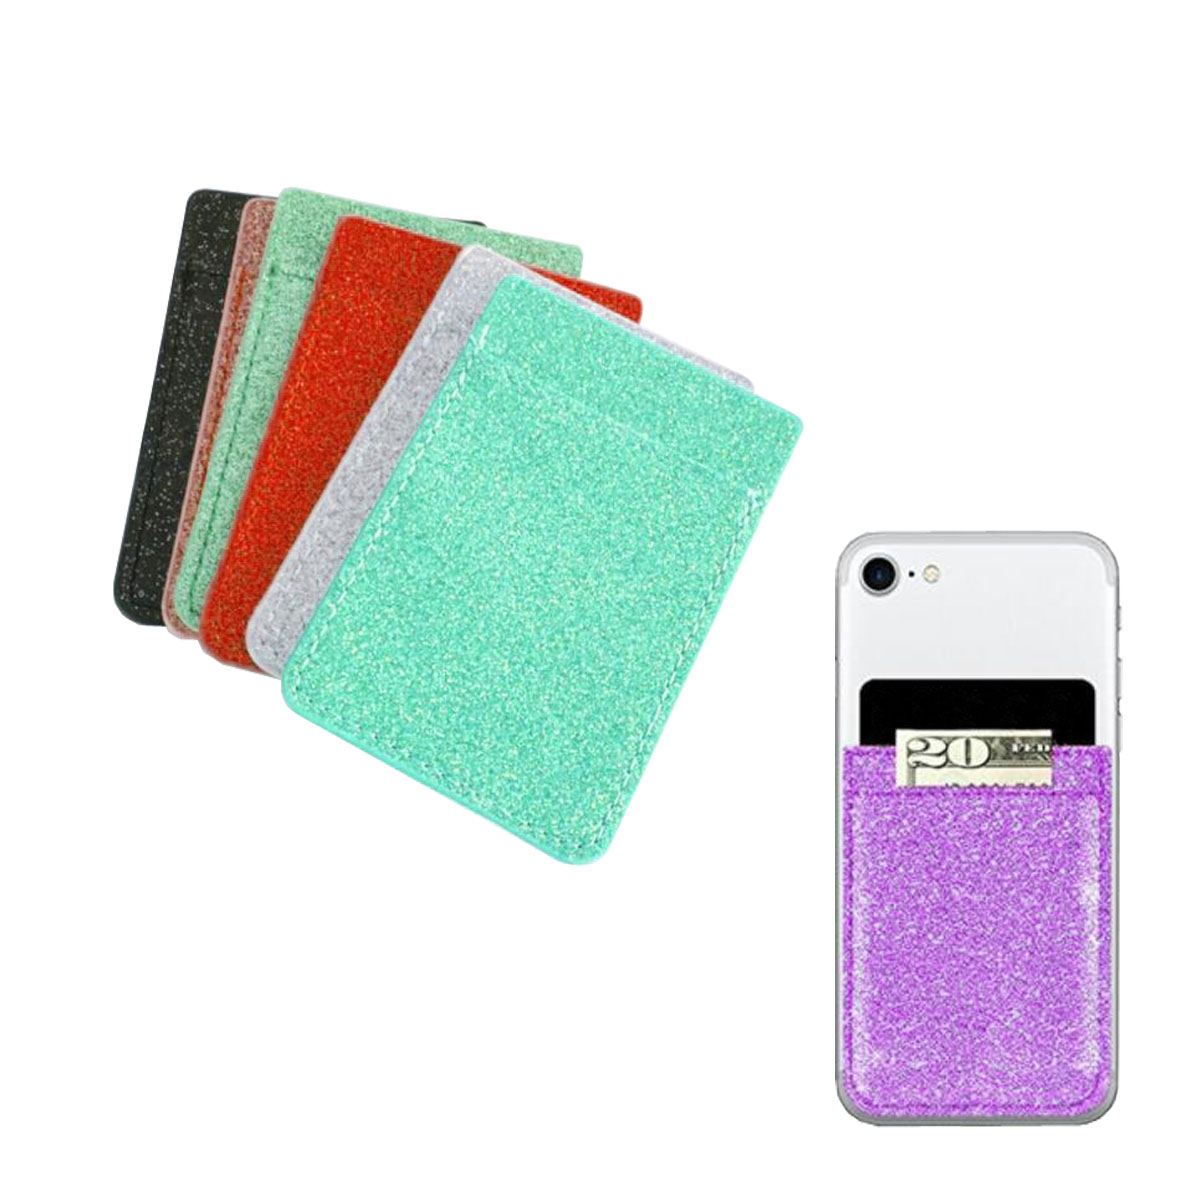 GL-AAA1349 Glitter Leatherete Adhesive Cell Phone Wallet